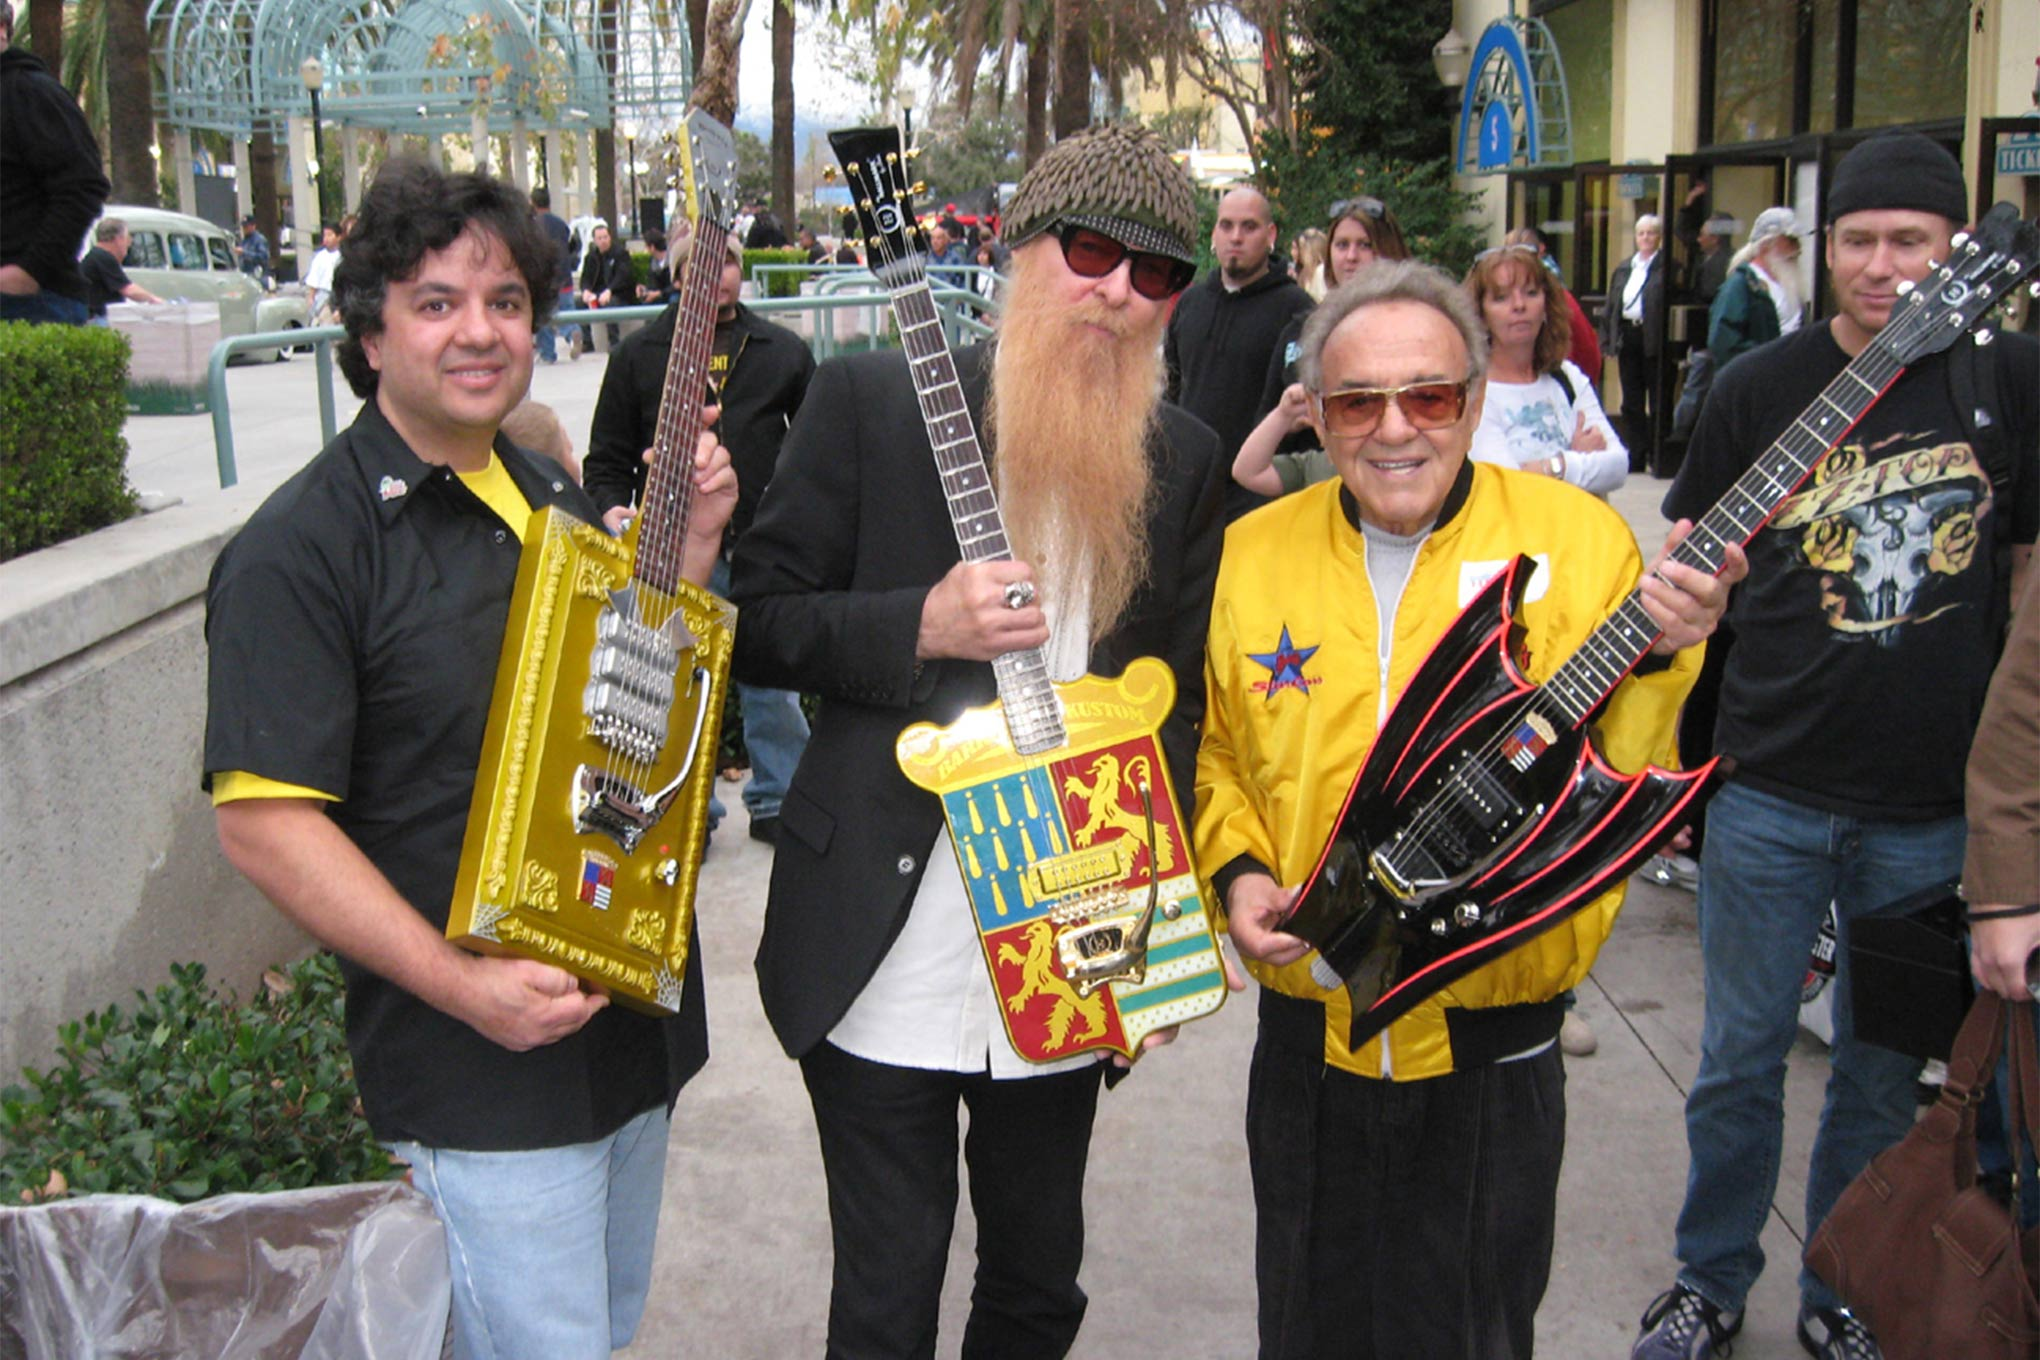 Hallmark Guitars' Bob Shade, ZZ Top's Billy Gibbons, and George Barris pose with Shade's Barris-inspired guitars, the Dragula, Barris Krest, and Wing-Bat. Photo Credit: Michael G. Stewart